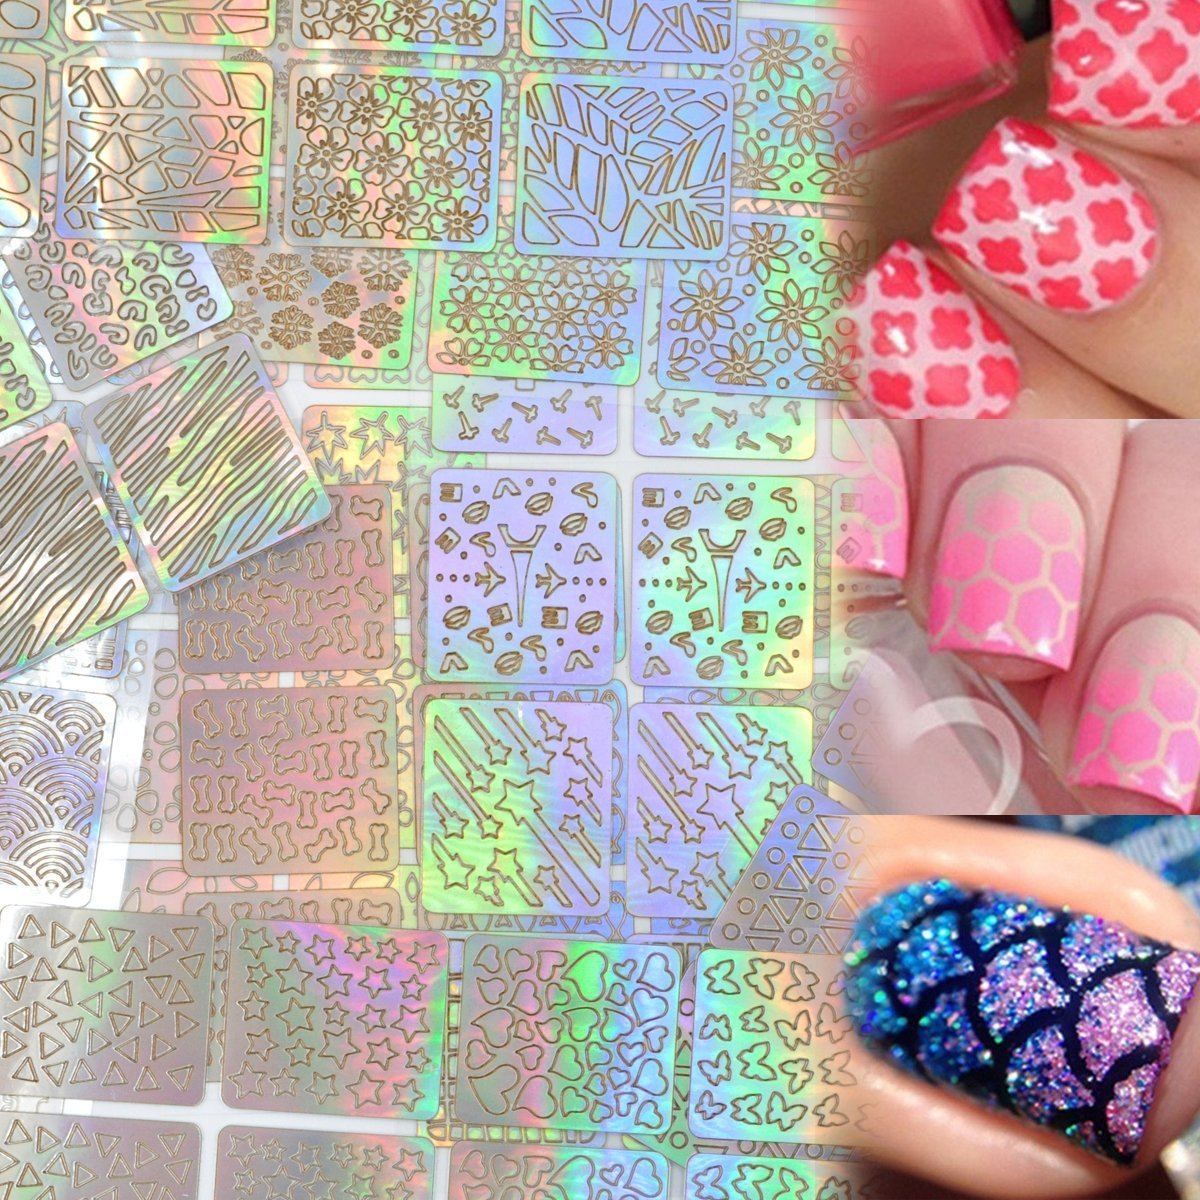 Lady Up Hollow Nail Vinyls Stencil Stickers for Nail Art Design Apply, 288 Pieces, 24 sheets with 96 Designs